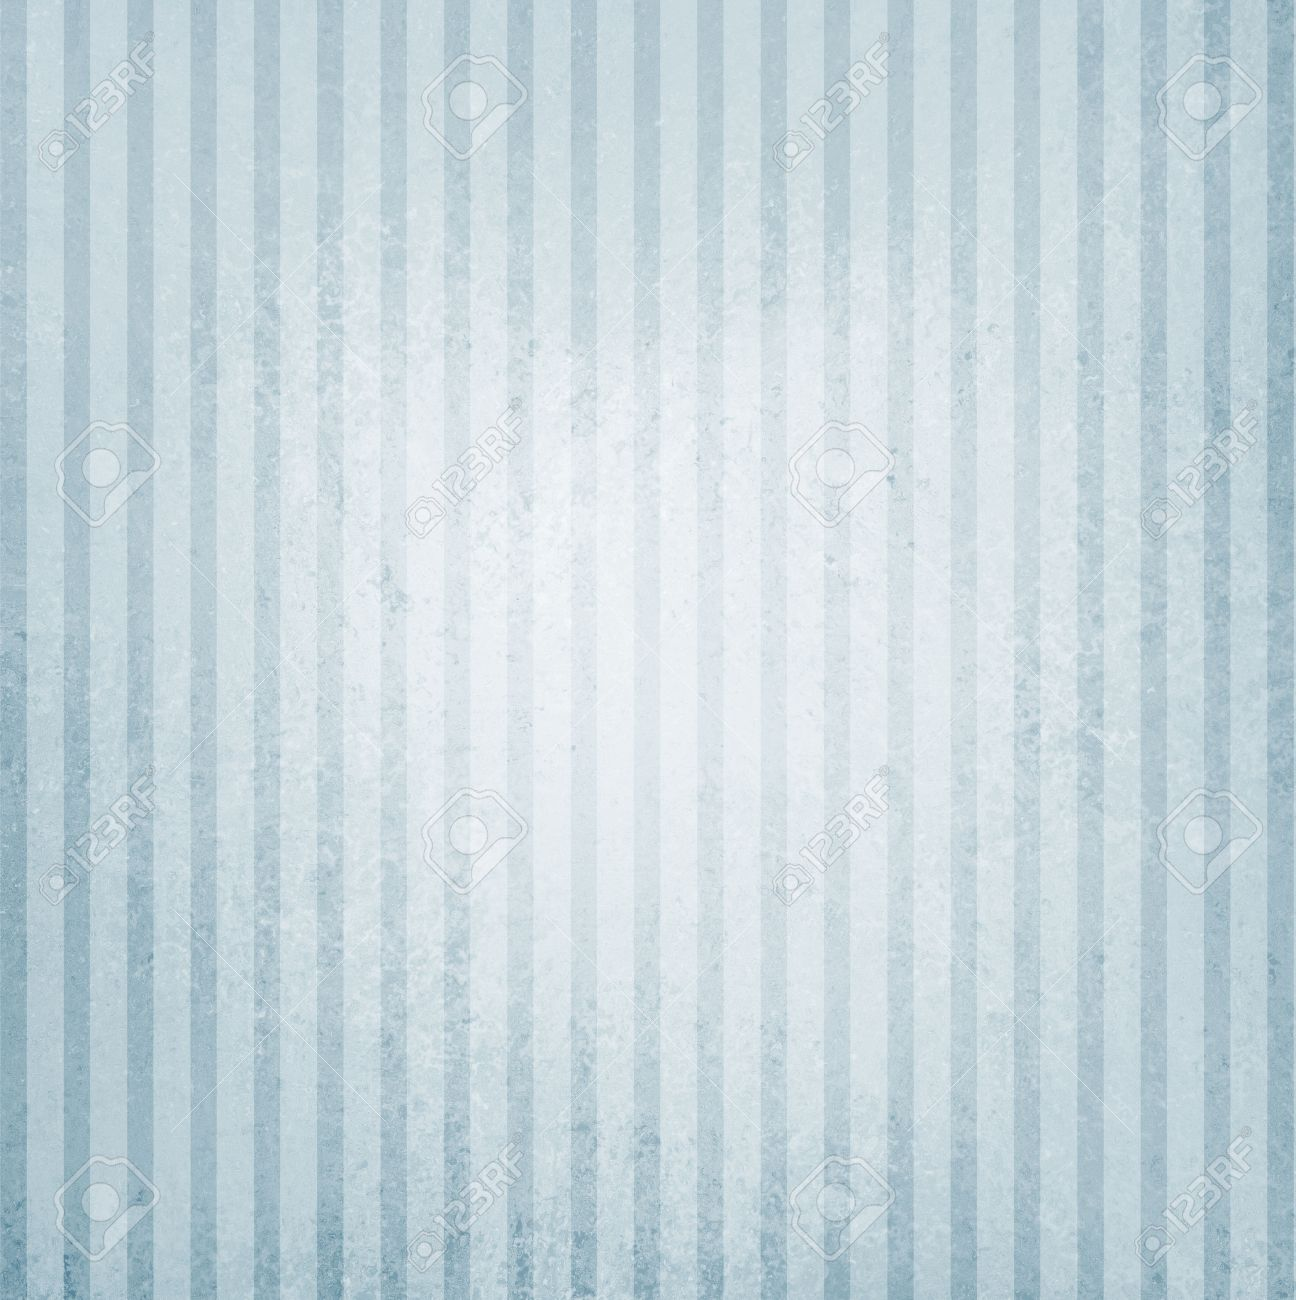 Off white diagonal striped plastic texture picture free photograph - Striped Wall Design Faded Vintage Blue And White Striped Background Shabby Chic Line Design